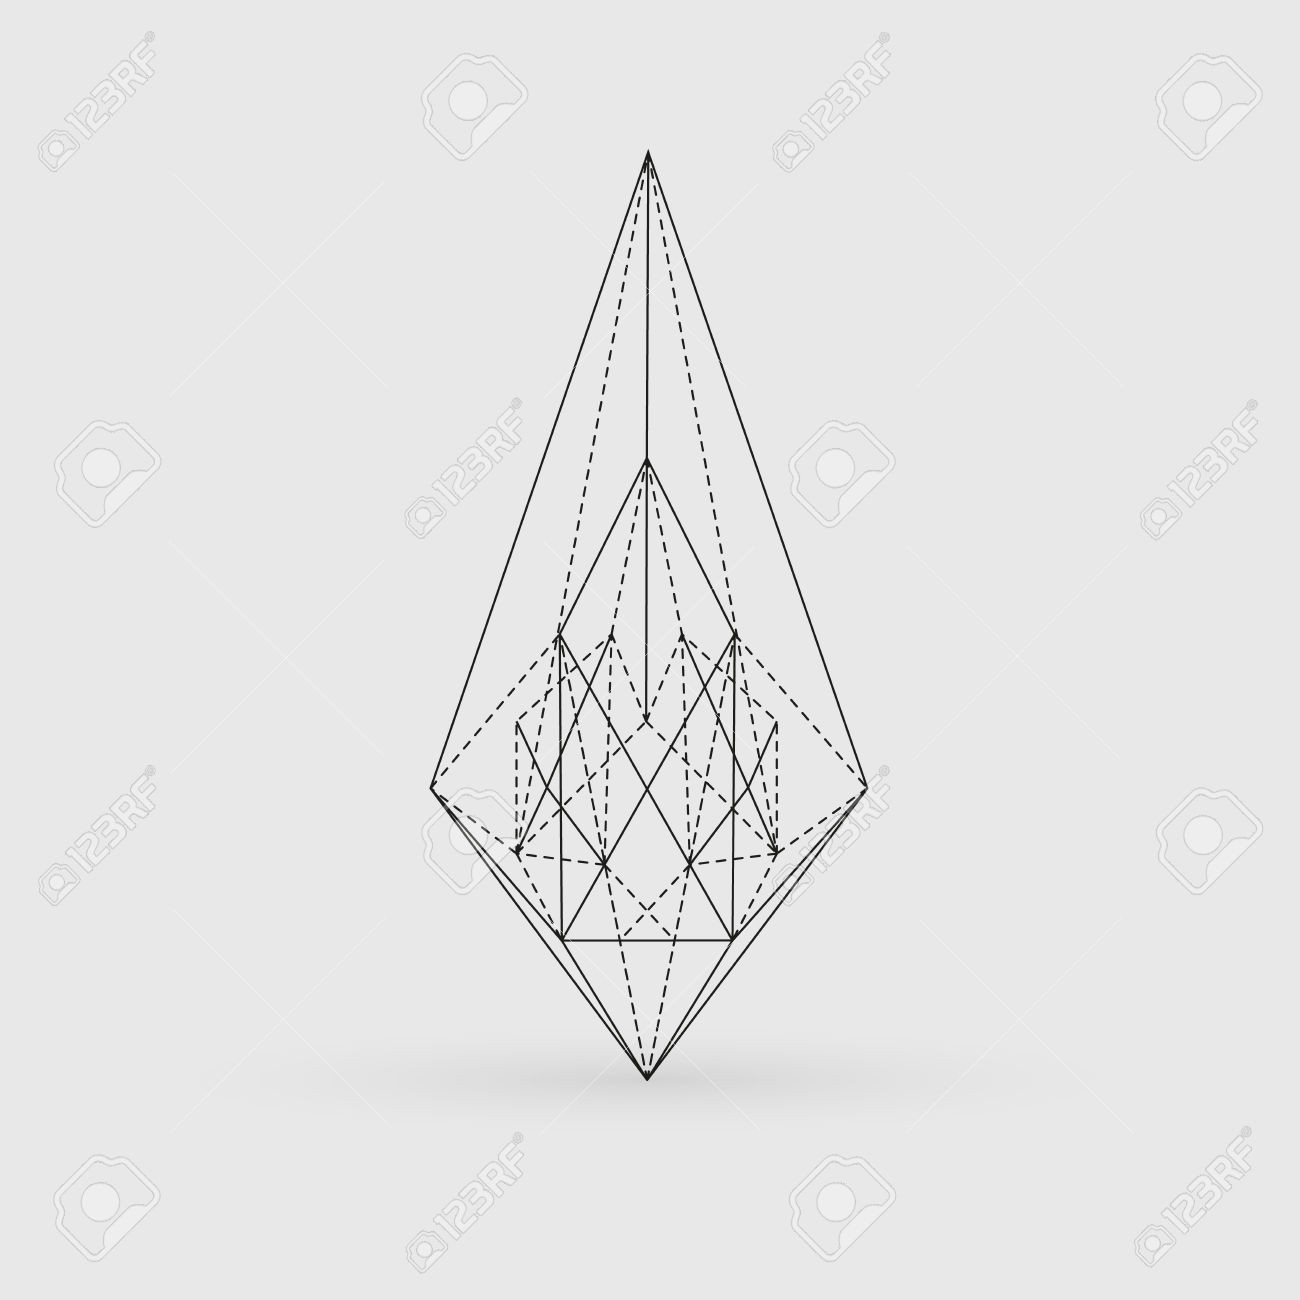 August | 2015 | Best Widescreen Wallpapers | Page 71 | Geometrical inside Geometric Shapes Design Tattoo 24513